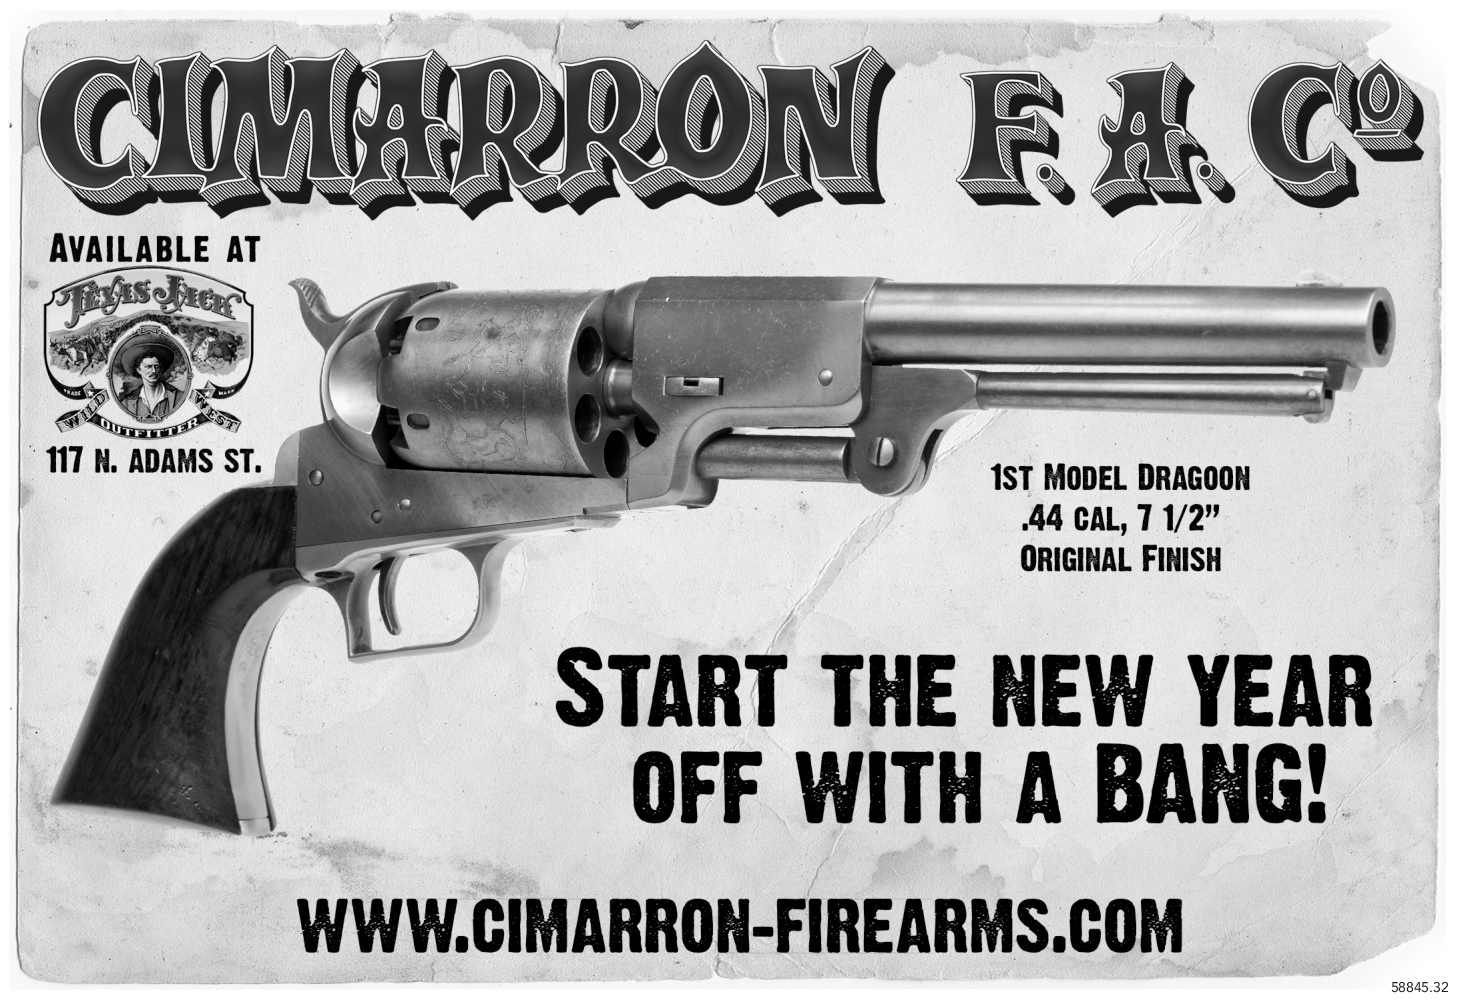 START THE NEW YEAR OFF WITH A BANG by Cimarron Firearms